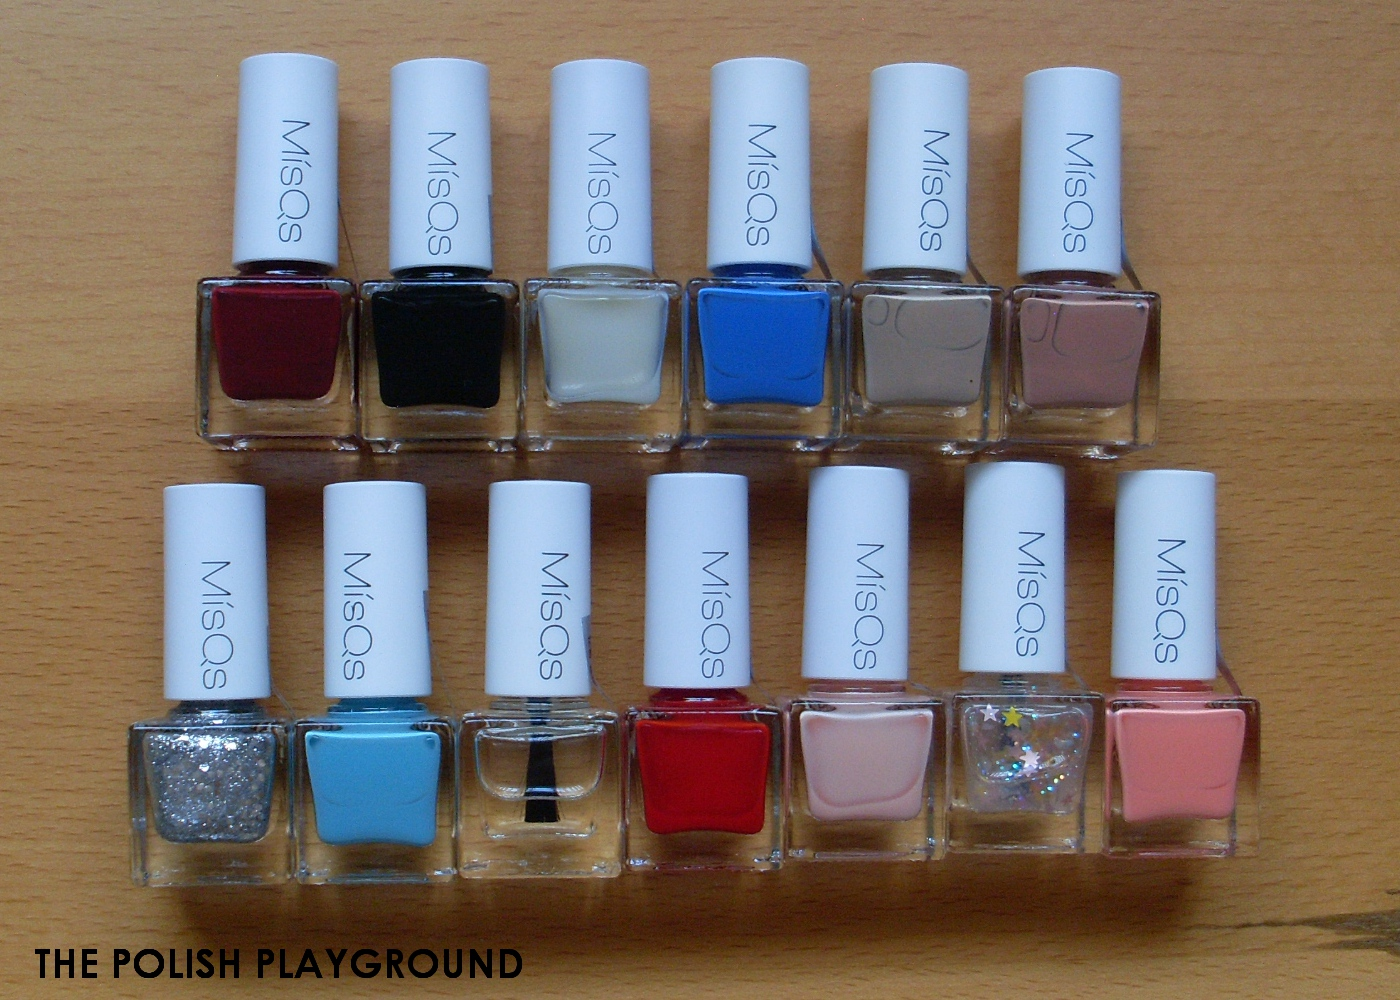 Wishtrend Haul - WISH BOX No.19 MisQs Nail Polish Box (Option 3 11 Colors + Gifts)